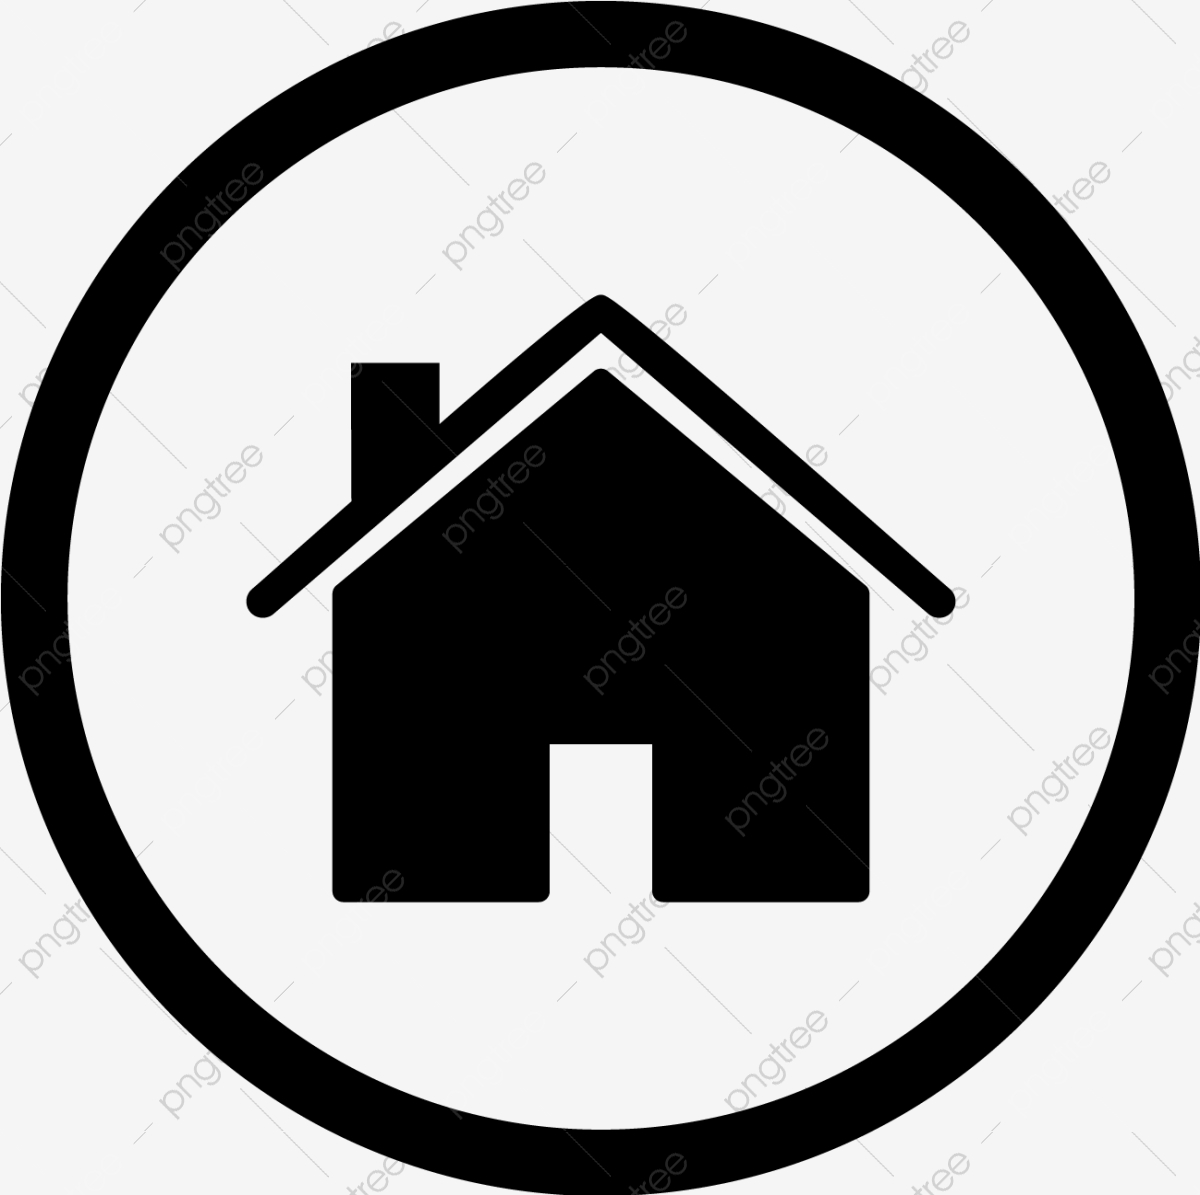 Vector House Icon Apartment Home House Png And Vector With Transparent Background For Free Download